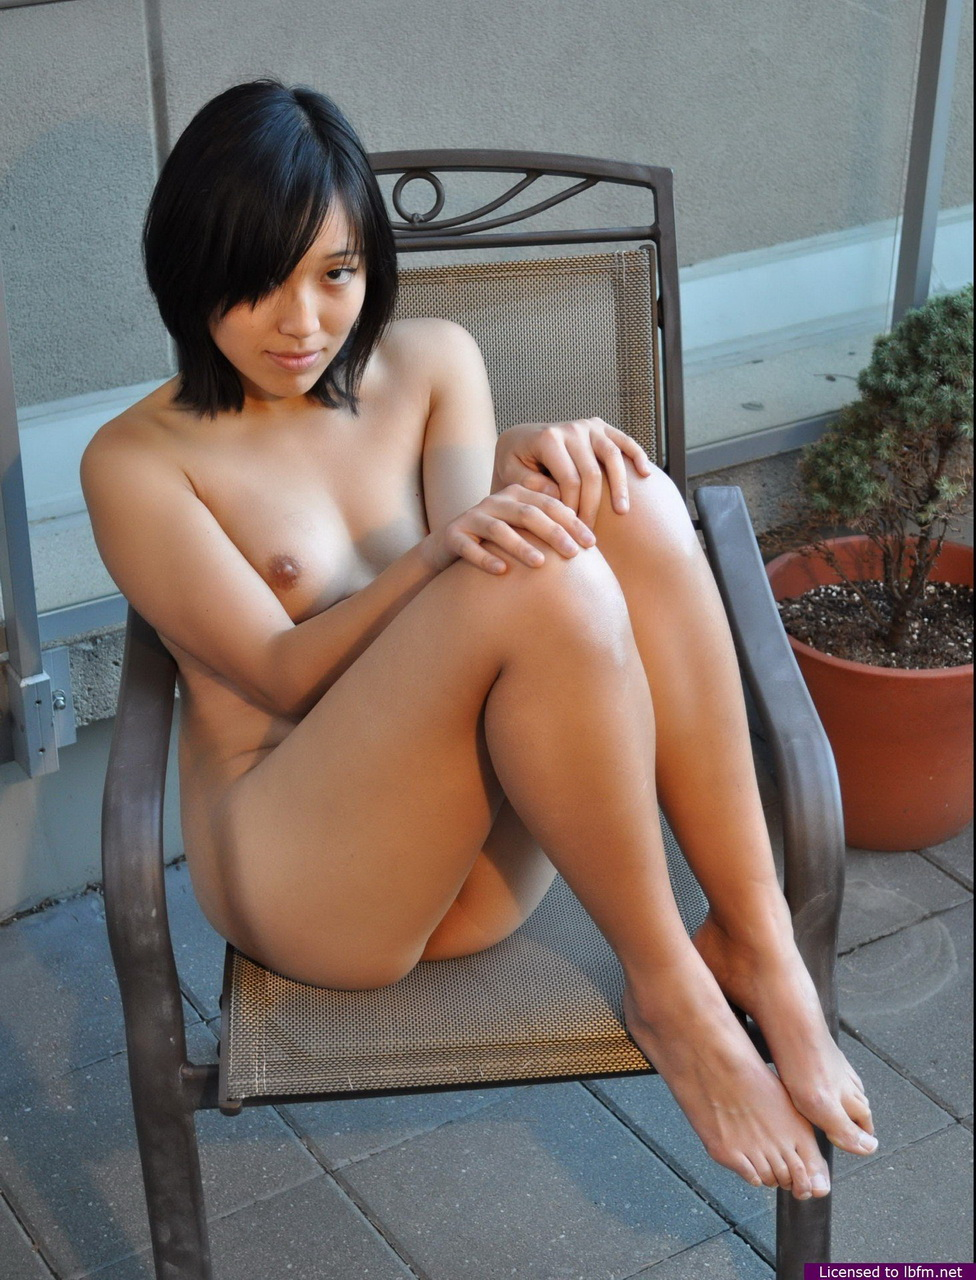 And Nude asian girl chair you hard